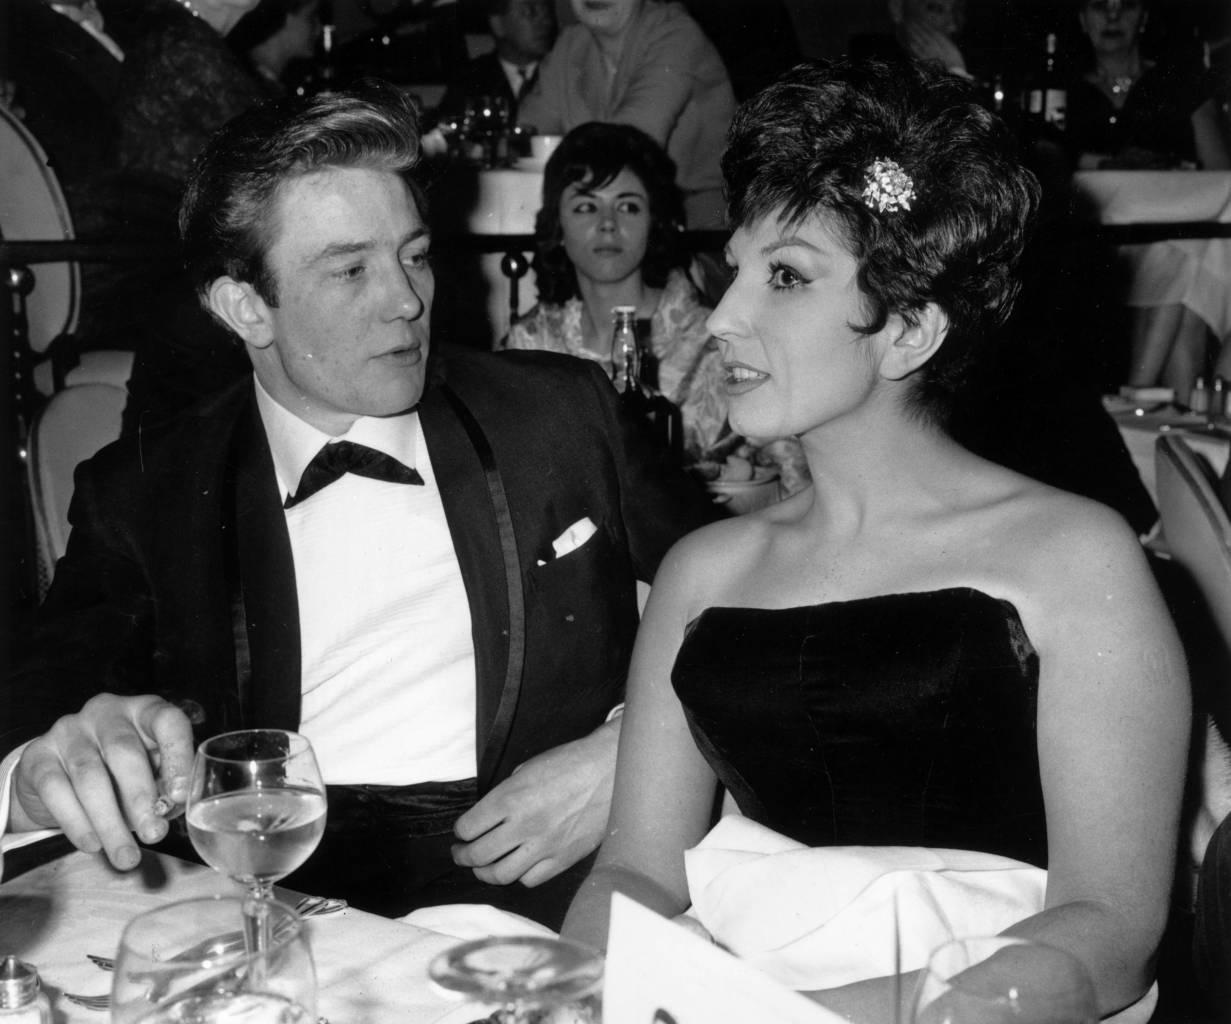 31st January 1961: English actor Albert Finney with the singer Alma Cogan (1932 - 1966) at the 'Talk of the Town' restaurant. (Photo by Evening Standard/Getty Images)